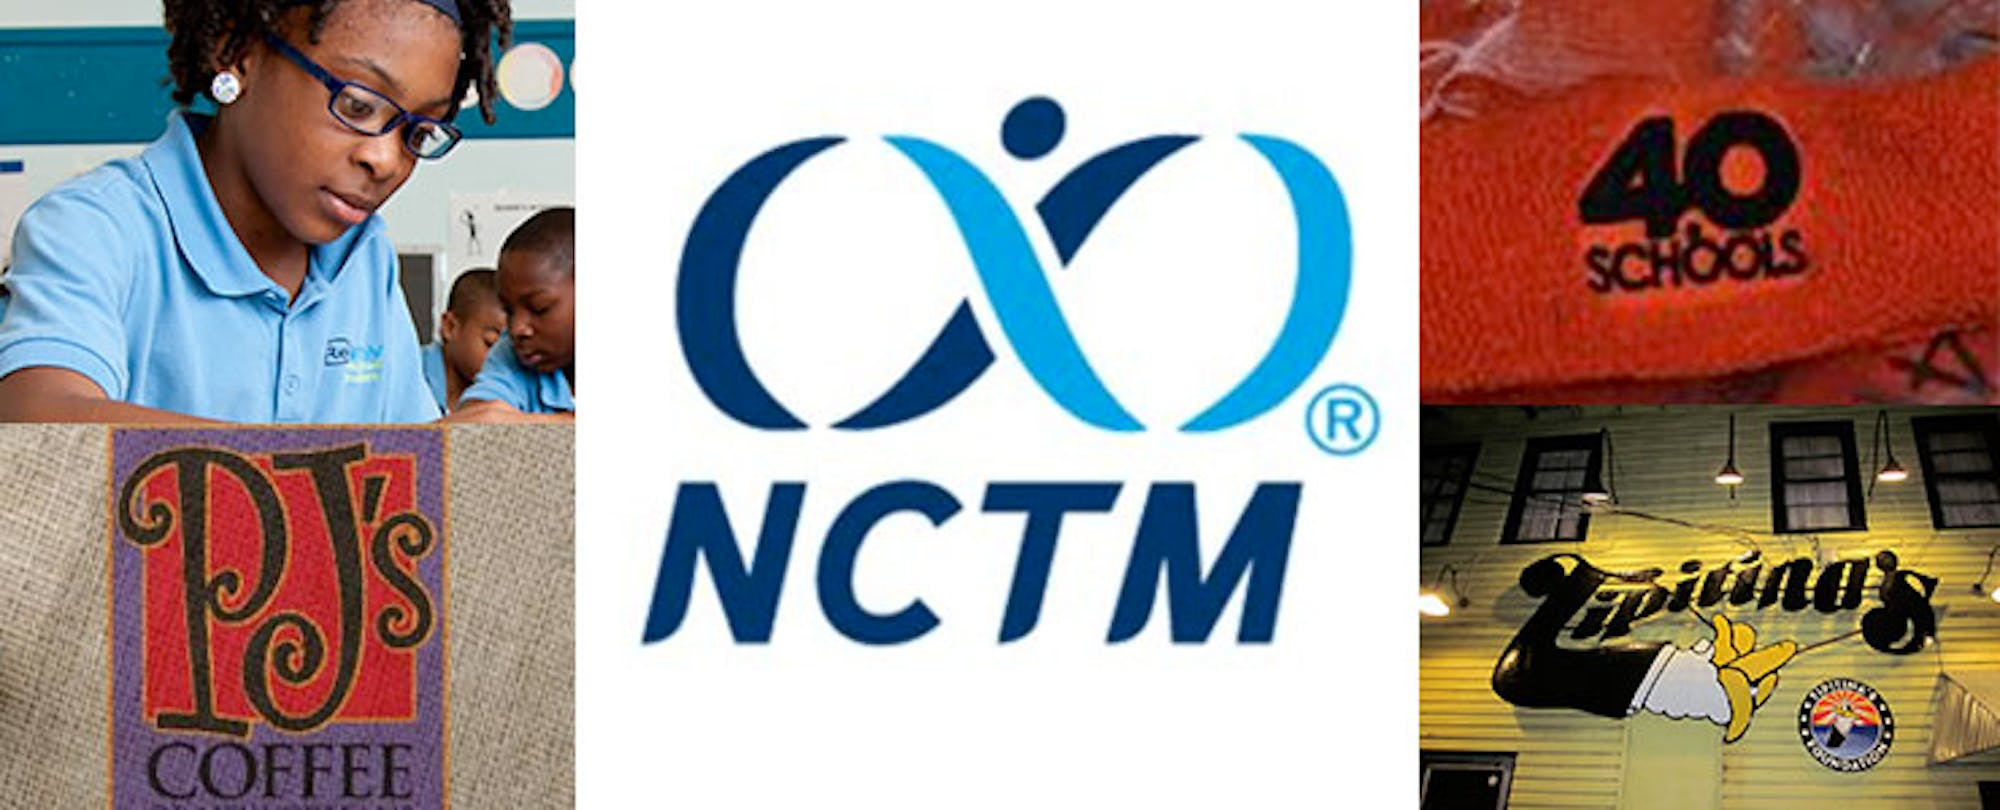 10 Must-Do's While in New Orleans for NCTM's Annual Meeting